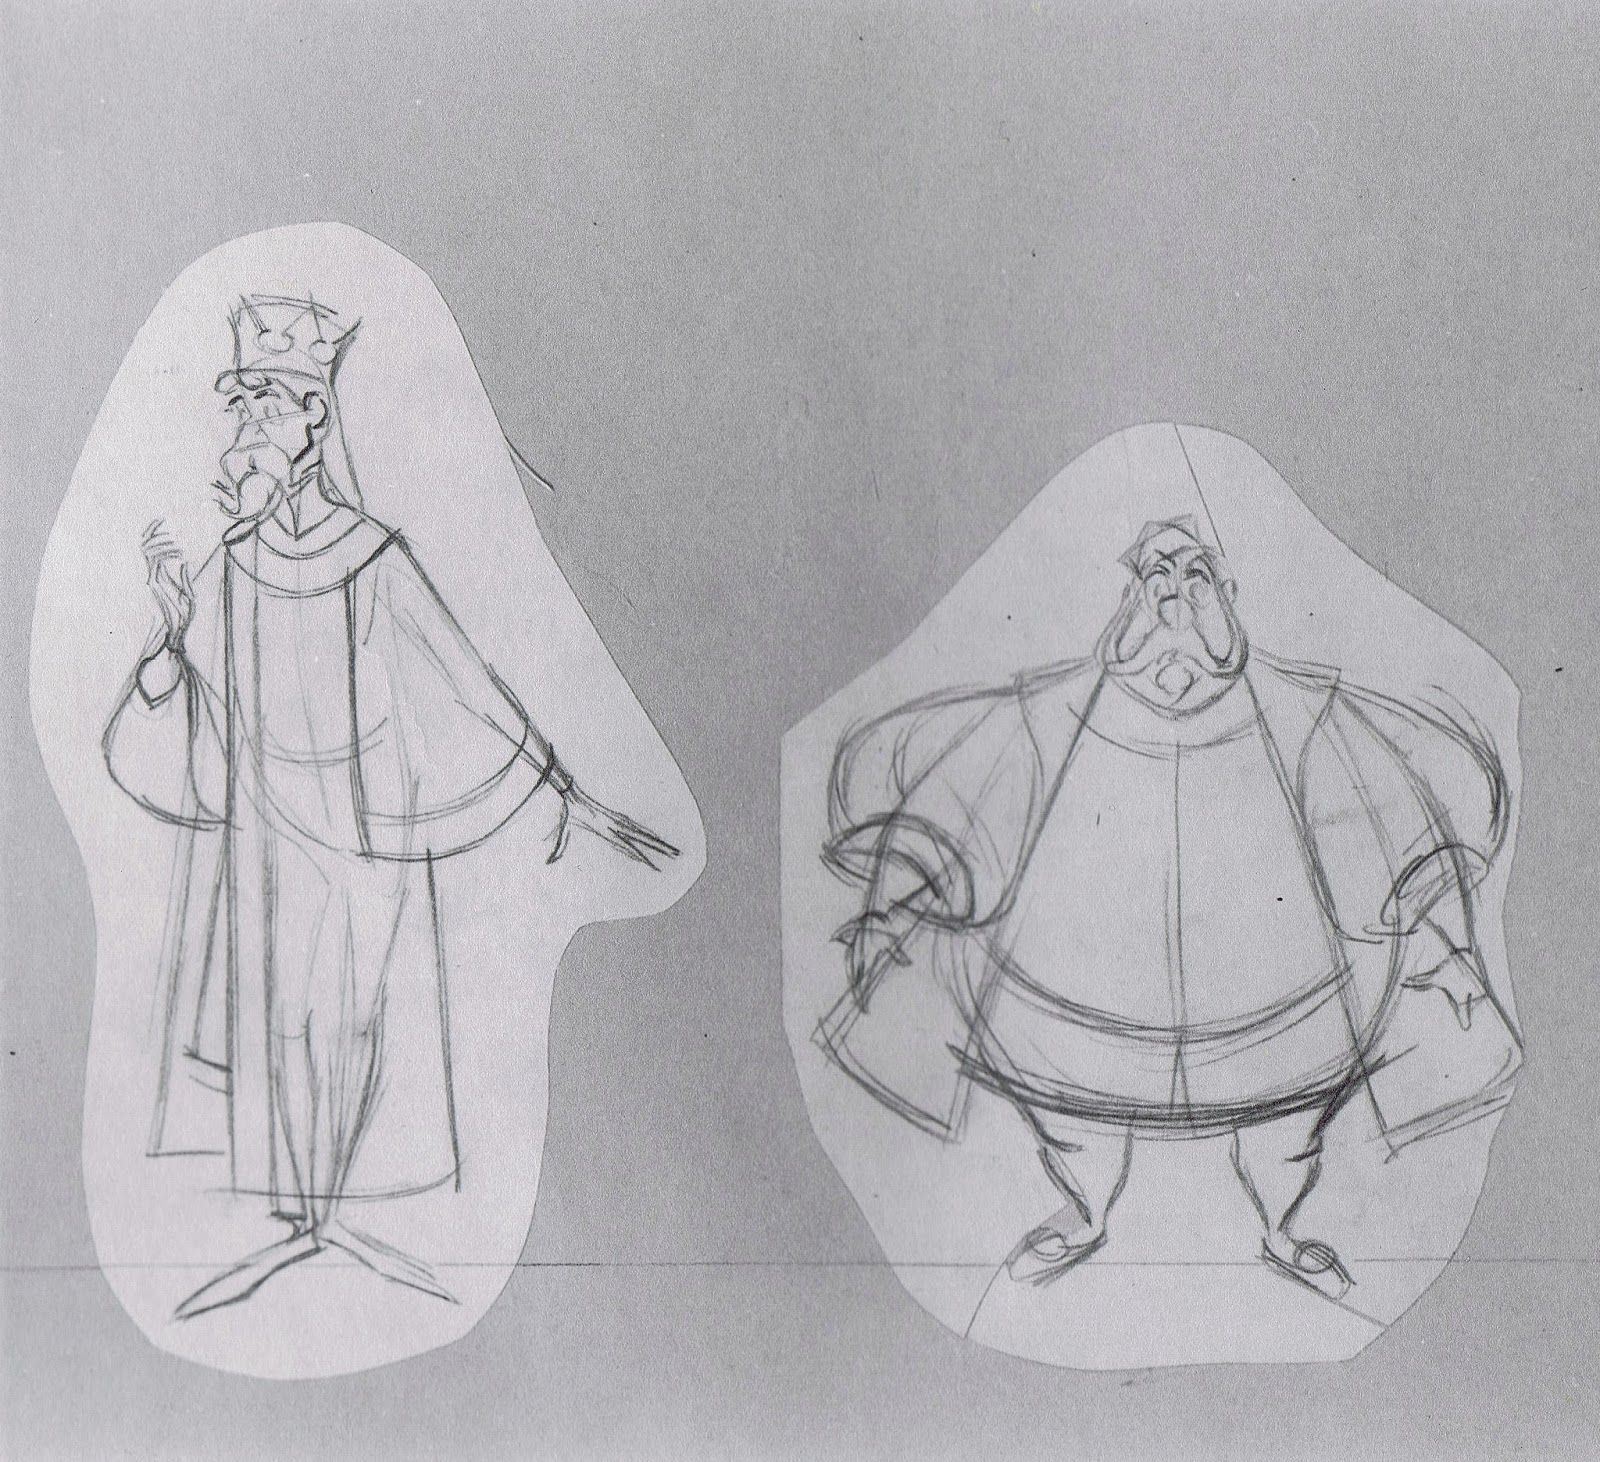 King Stefan and King Hubert comparison sketches by Milt Kahl